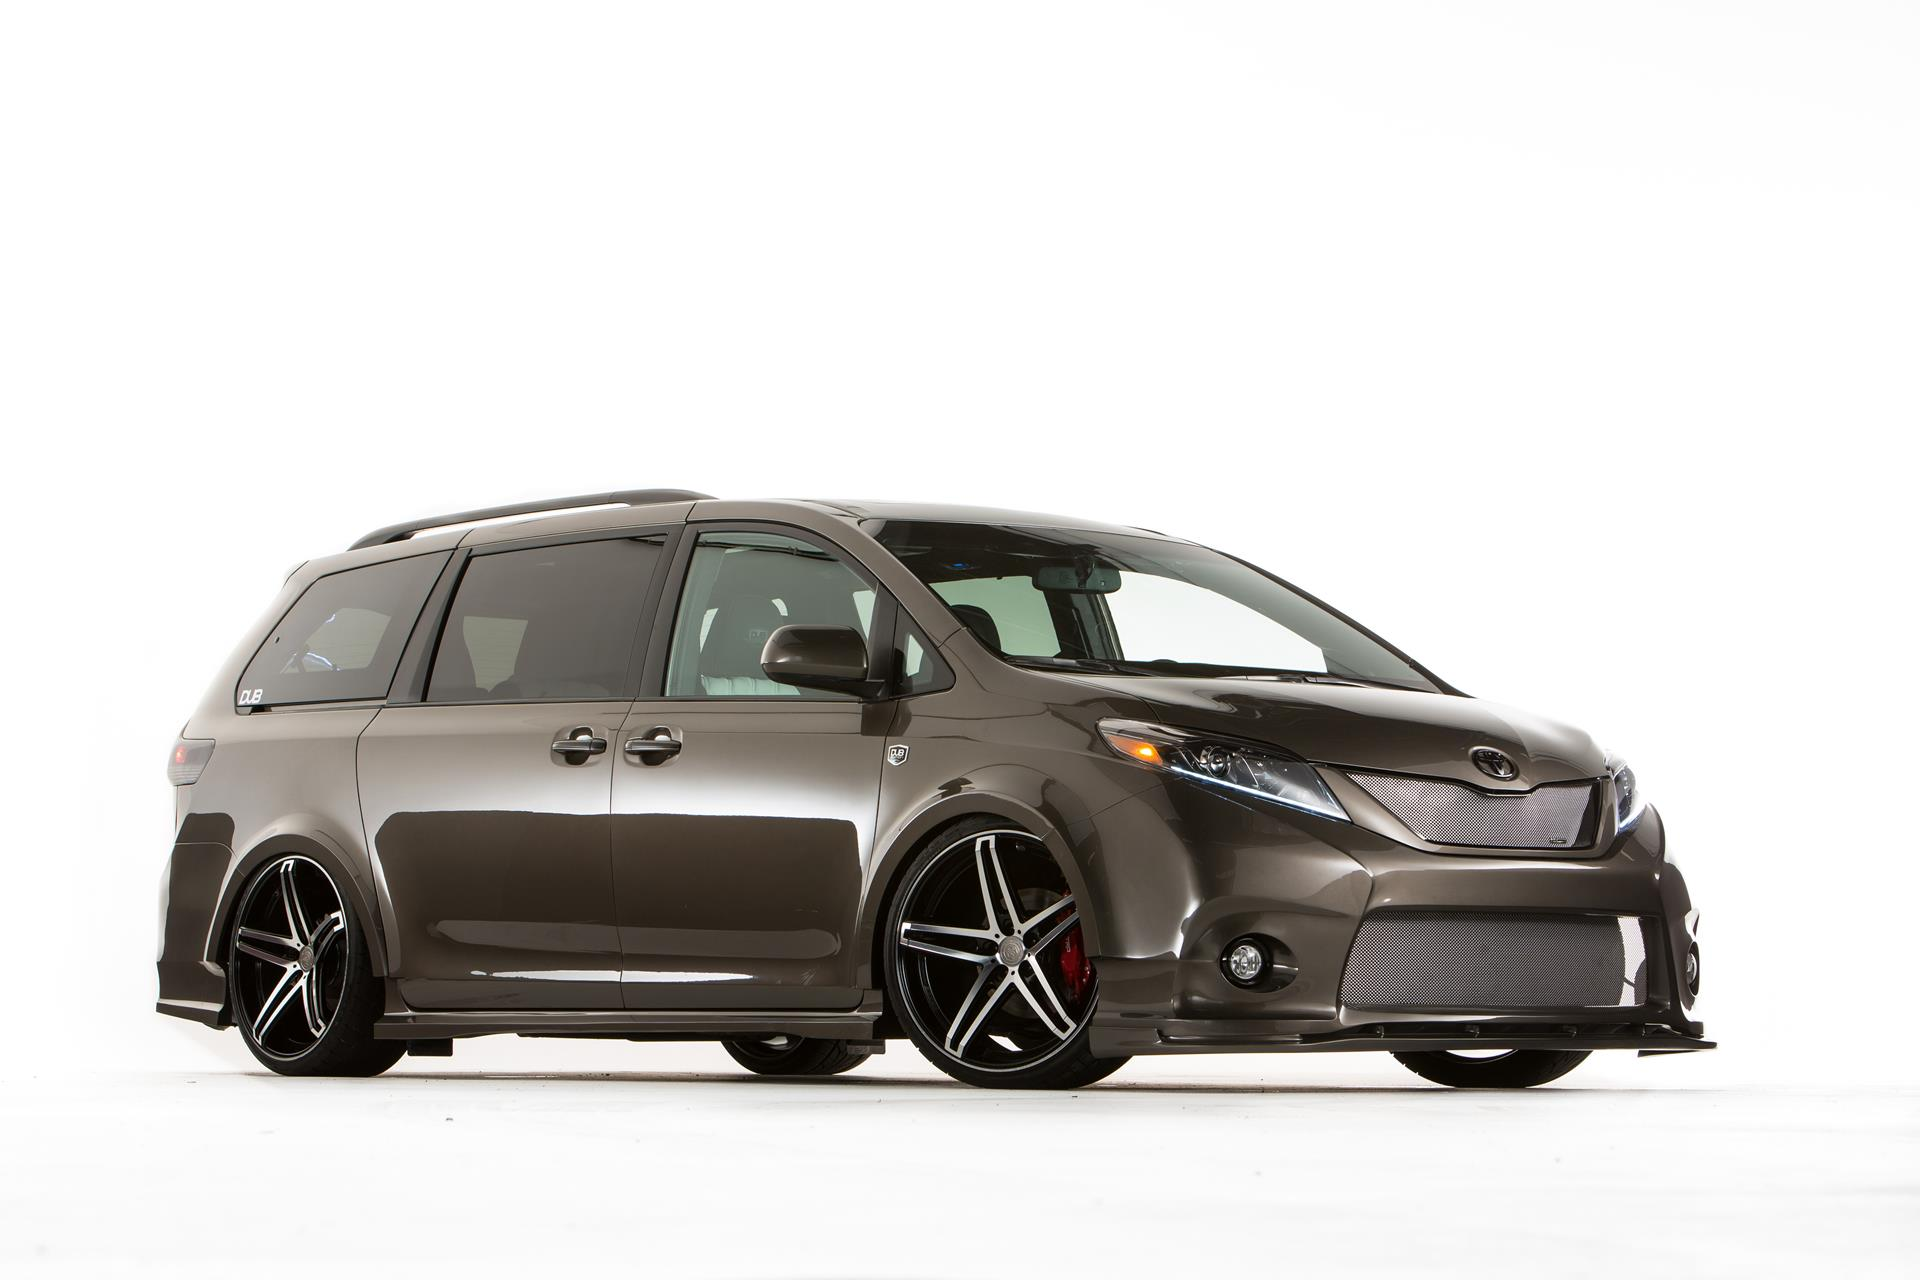 2014 toyota sienna dub edition news and information. Black Bedroom Furniture Sets. Home Design Ideas